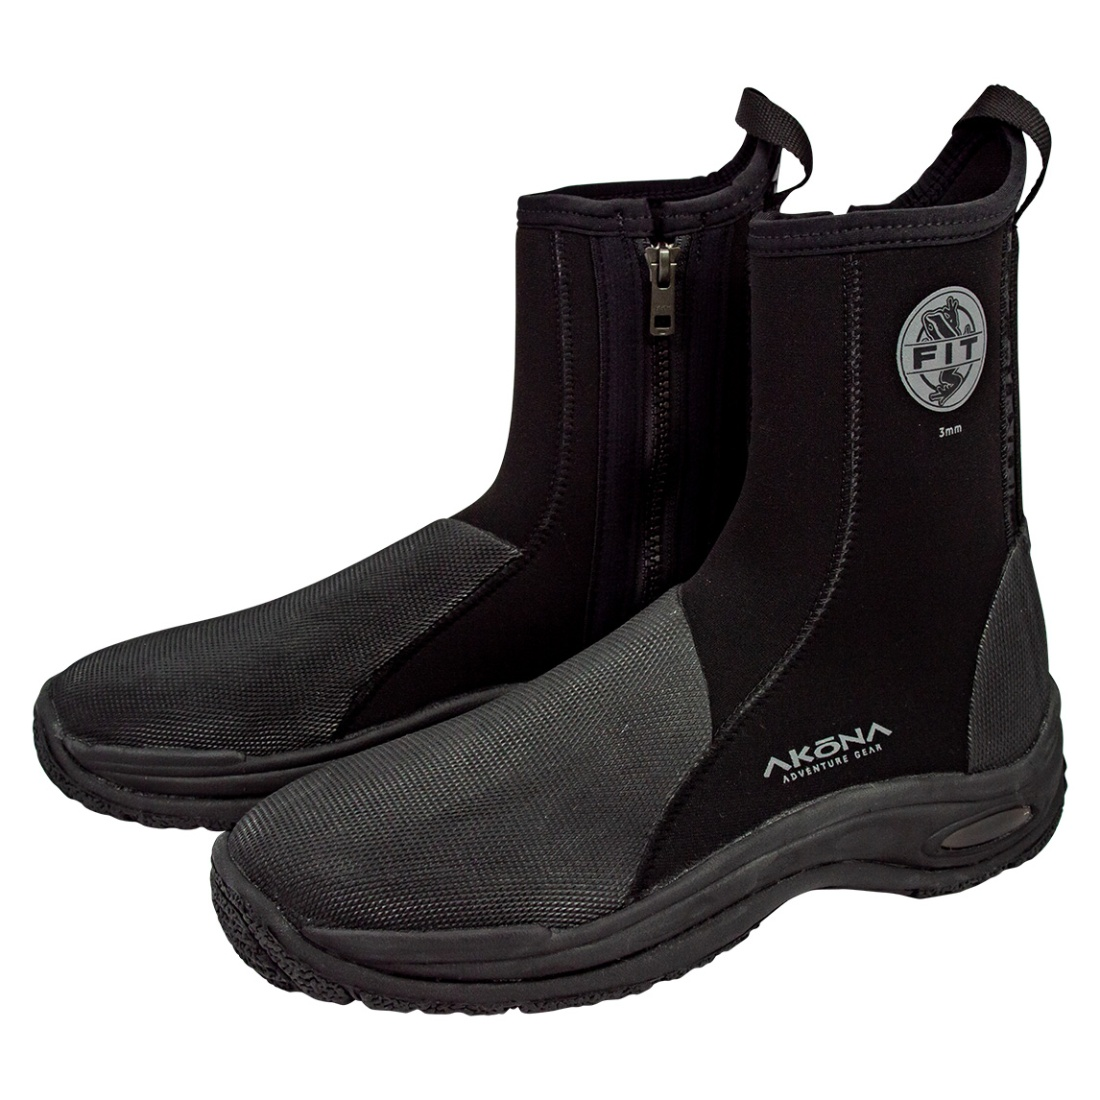 DELUXE MOLDED SOLE BOOT - AKBT131 IMAGE 1